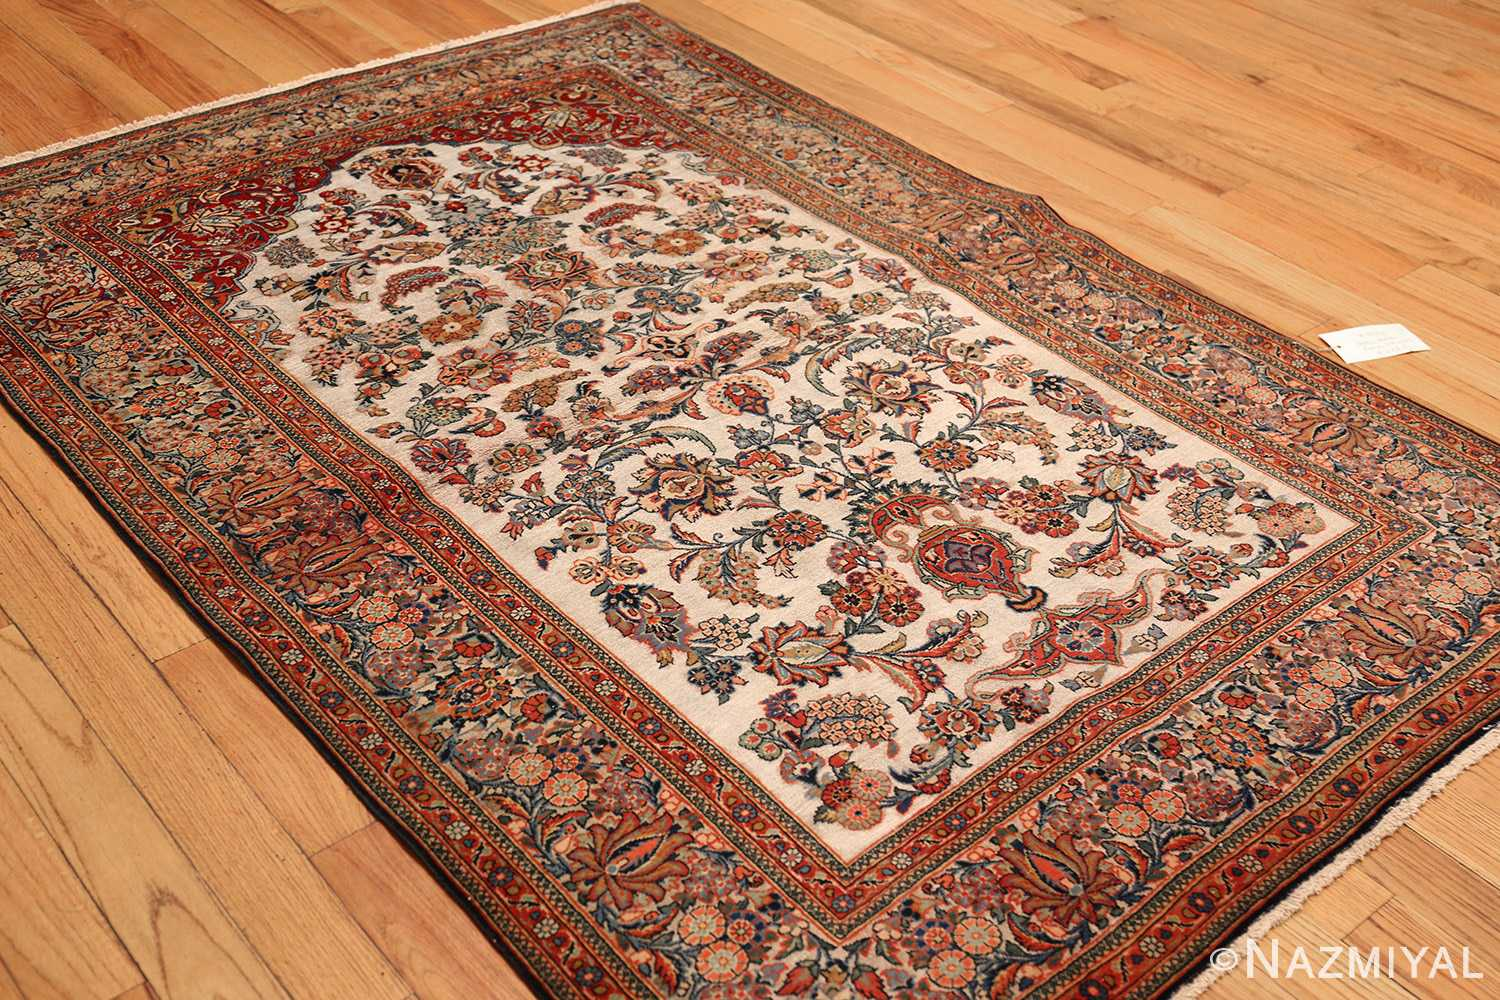 antique persian wool and silk prayer design kashan oriental rug 50633 side Nazmiyal